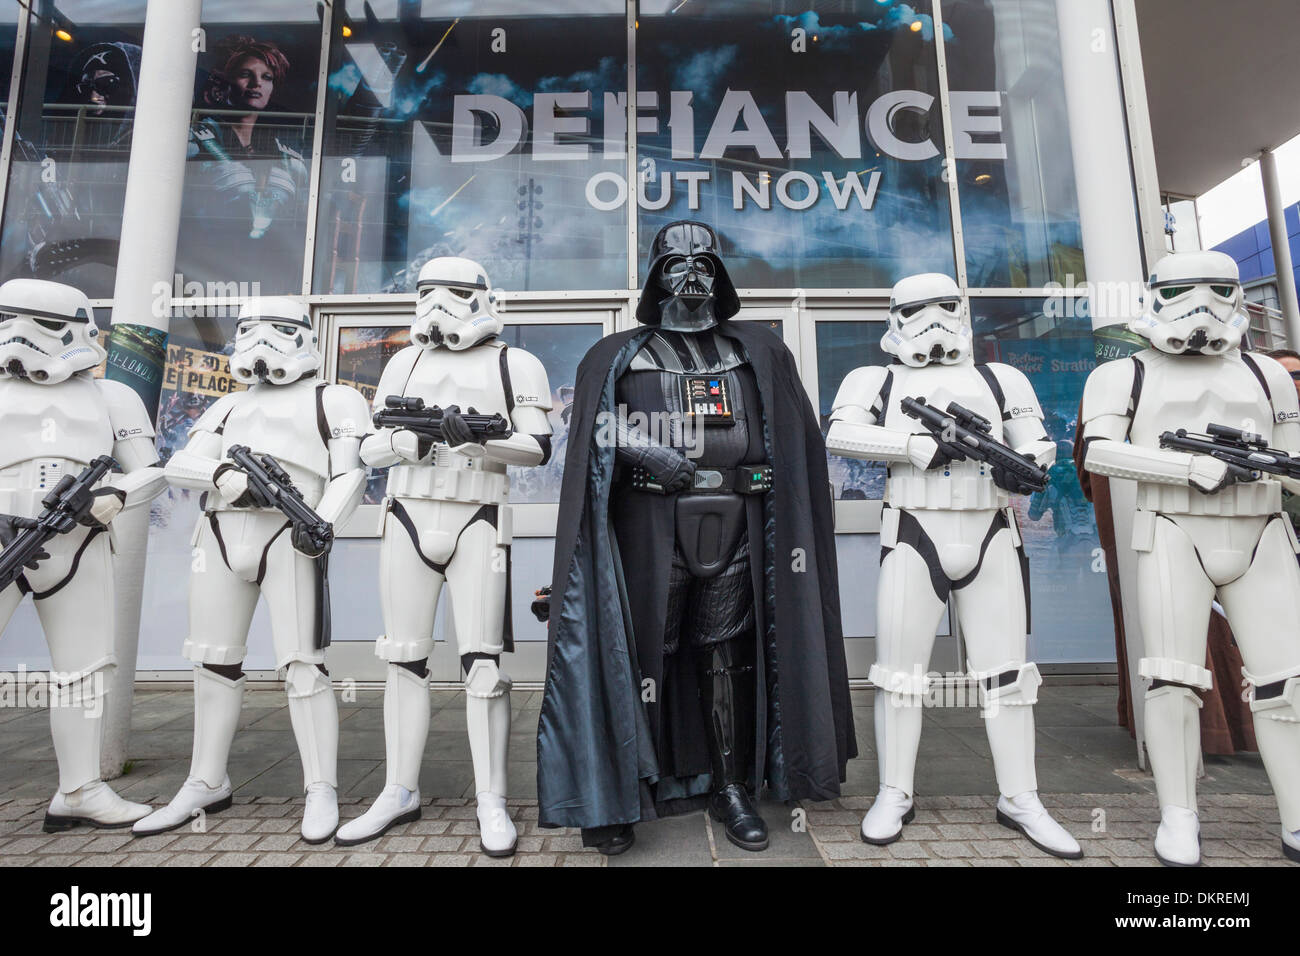 L'Angleterre, Londres, Stratford, Sci-fi annuel Parade de costumes, Star Wars, Darth Vader et Stormtroopers Photo Stock